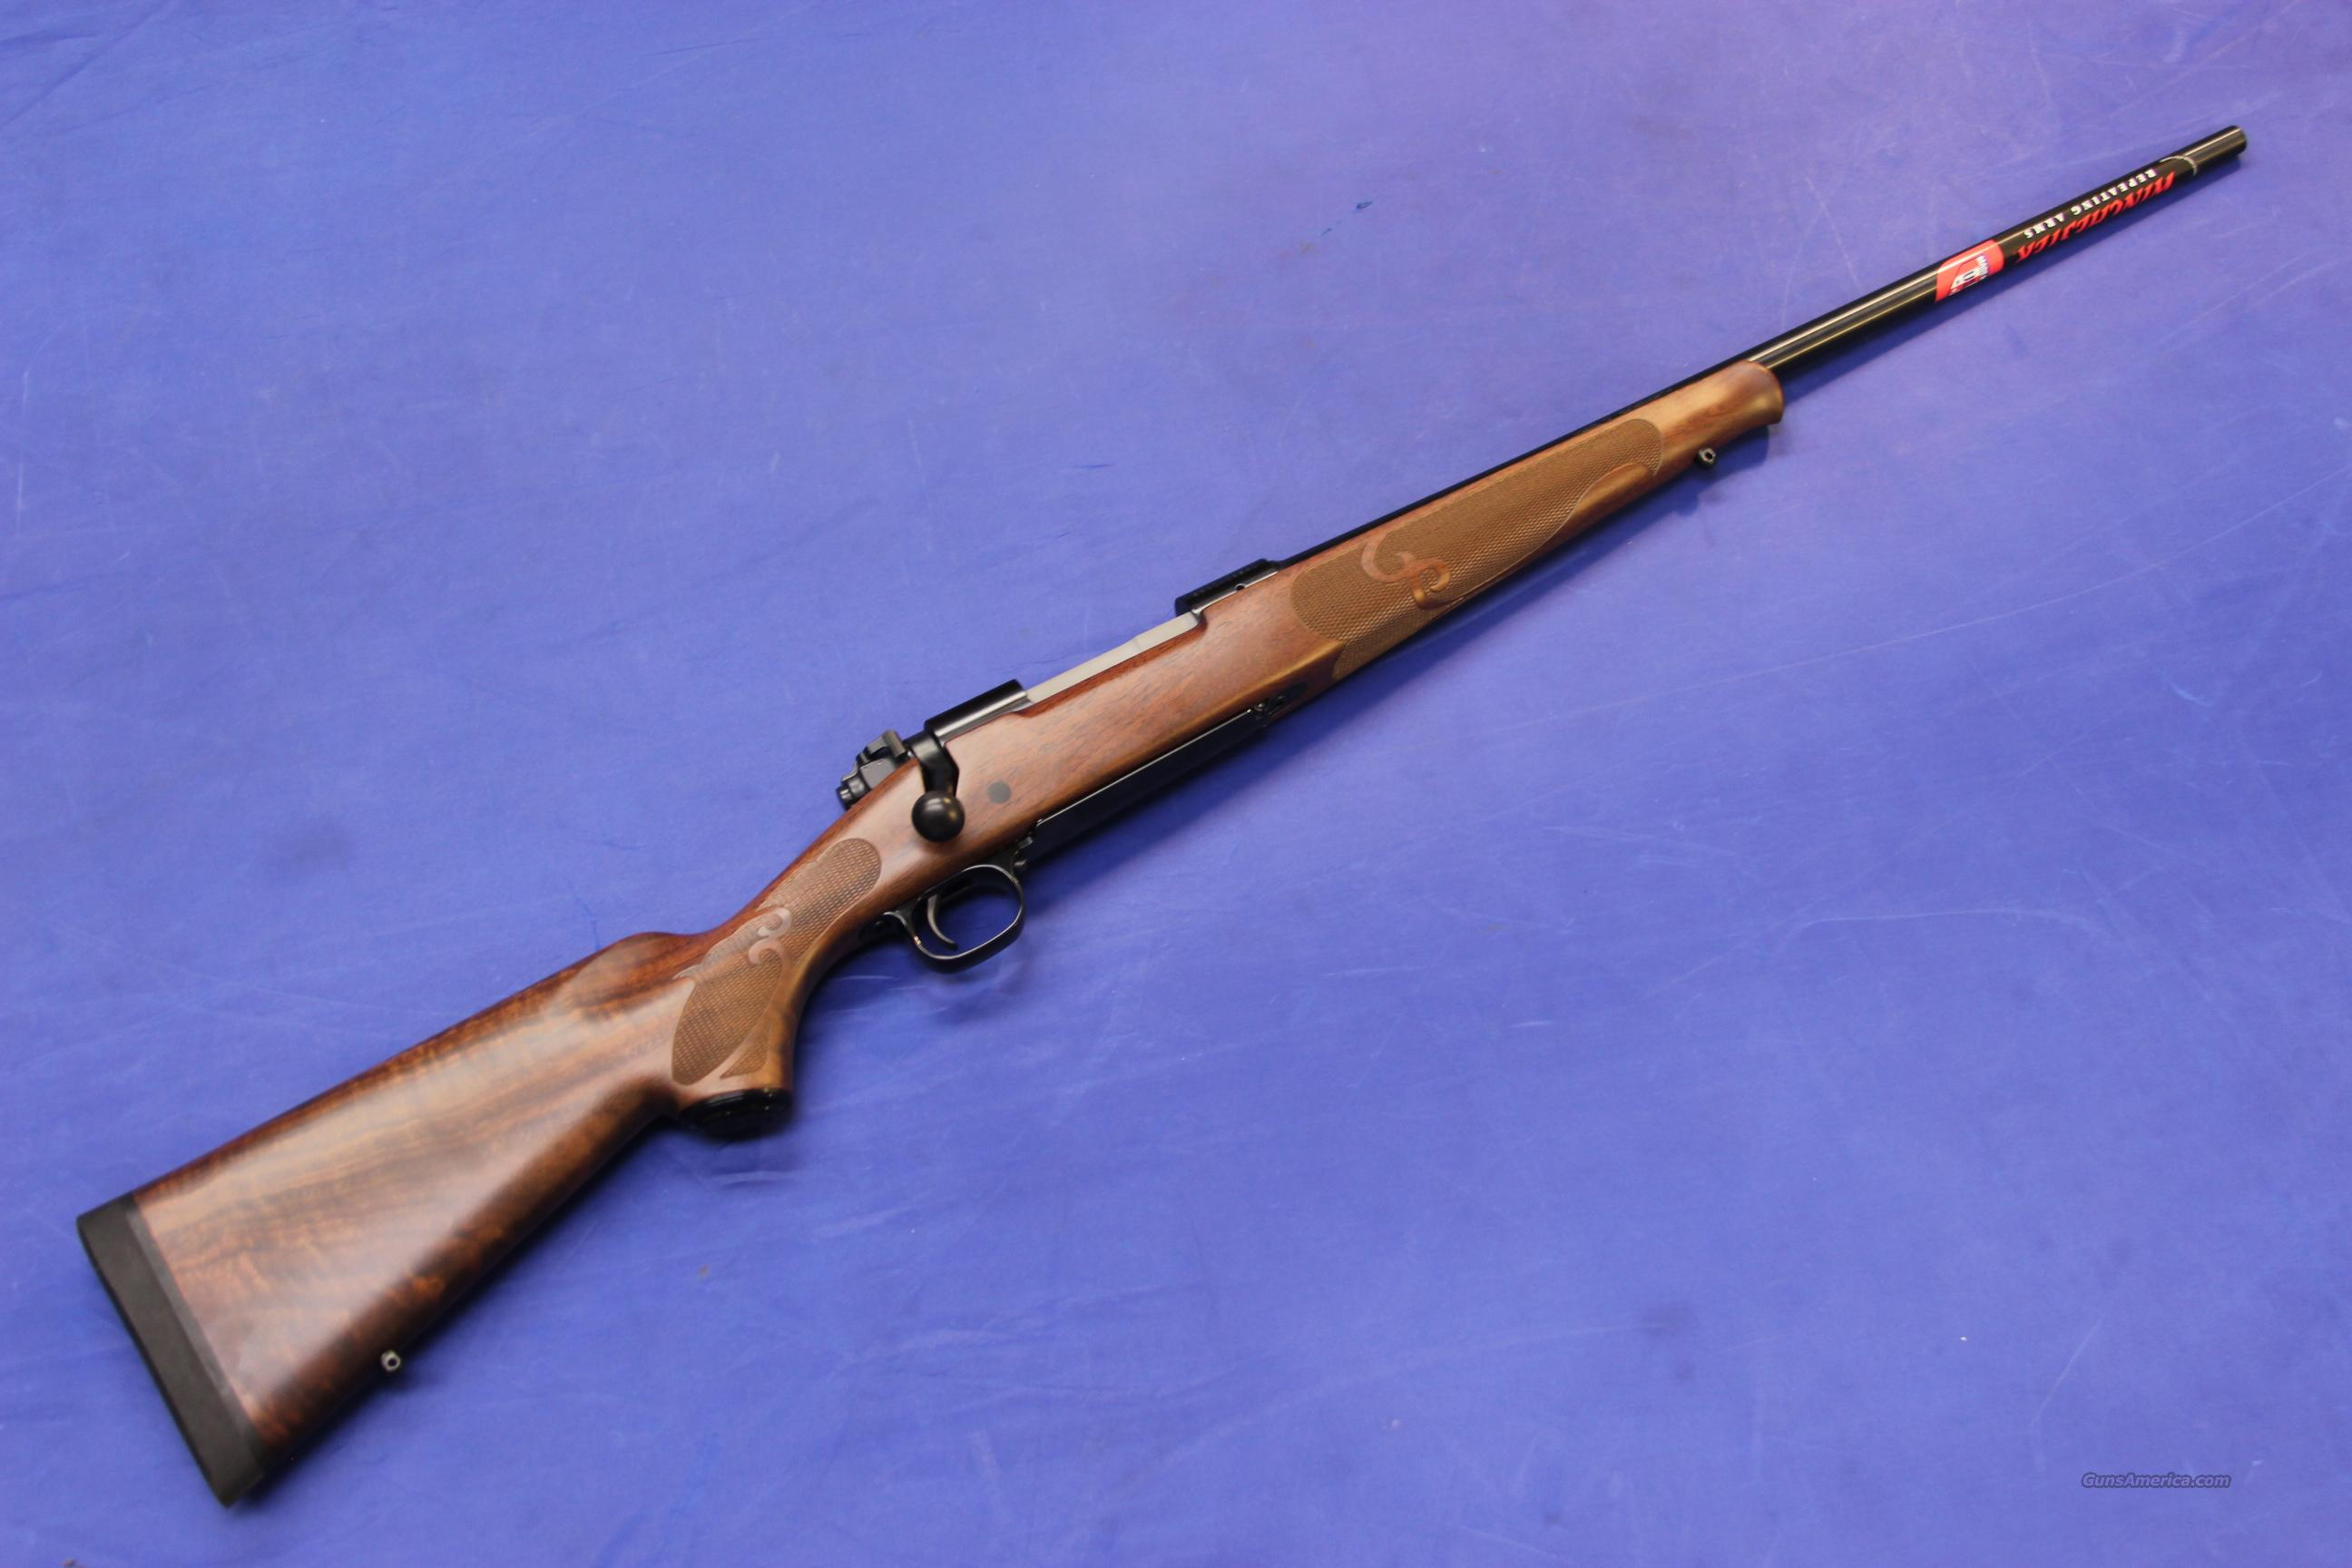 Winchester 70 Featherweight Grade III .270 Win - New!  Guns > Rifles > Winchester Rifles - Modern Bolt/Auto/Single > Model 70 > Post-64